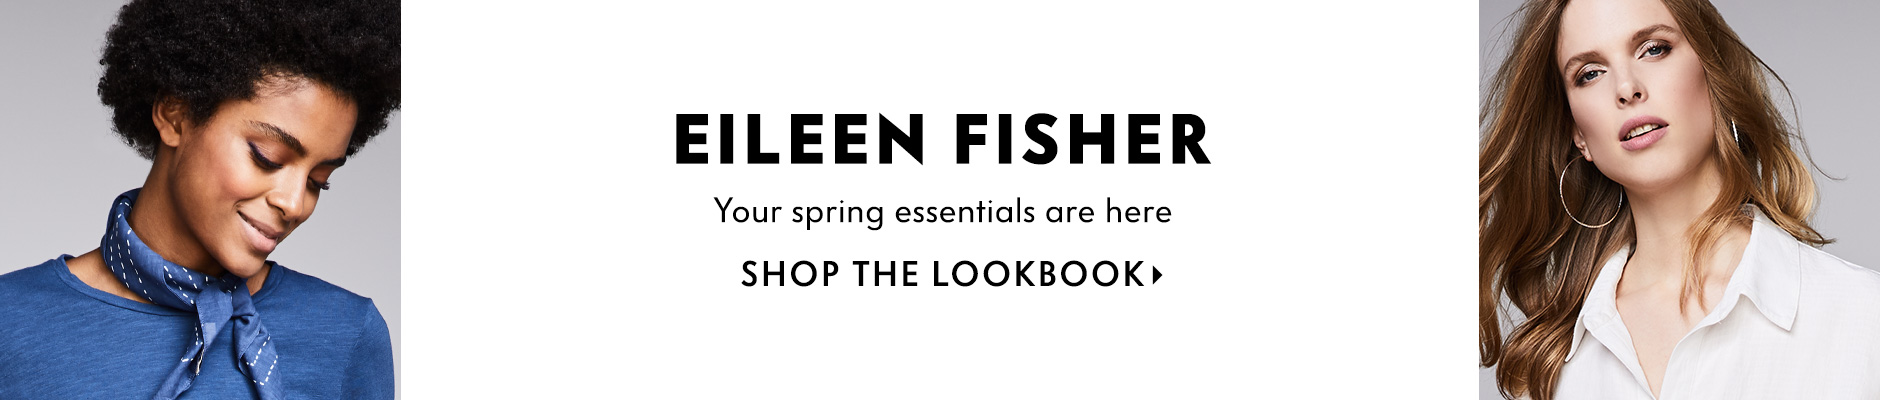 Eileen Fisher Core Customer Classic Lookbook